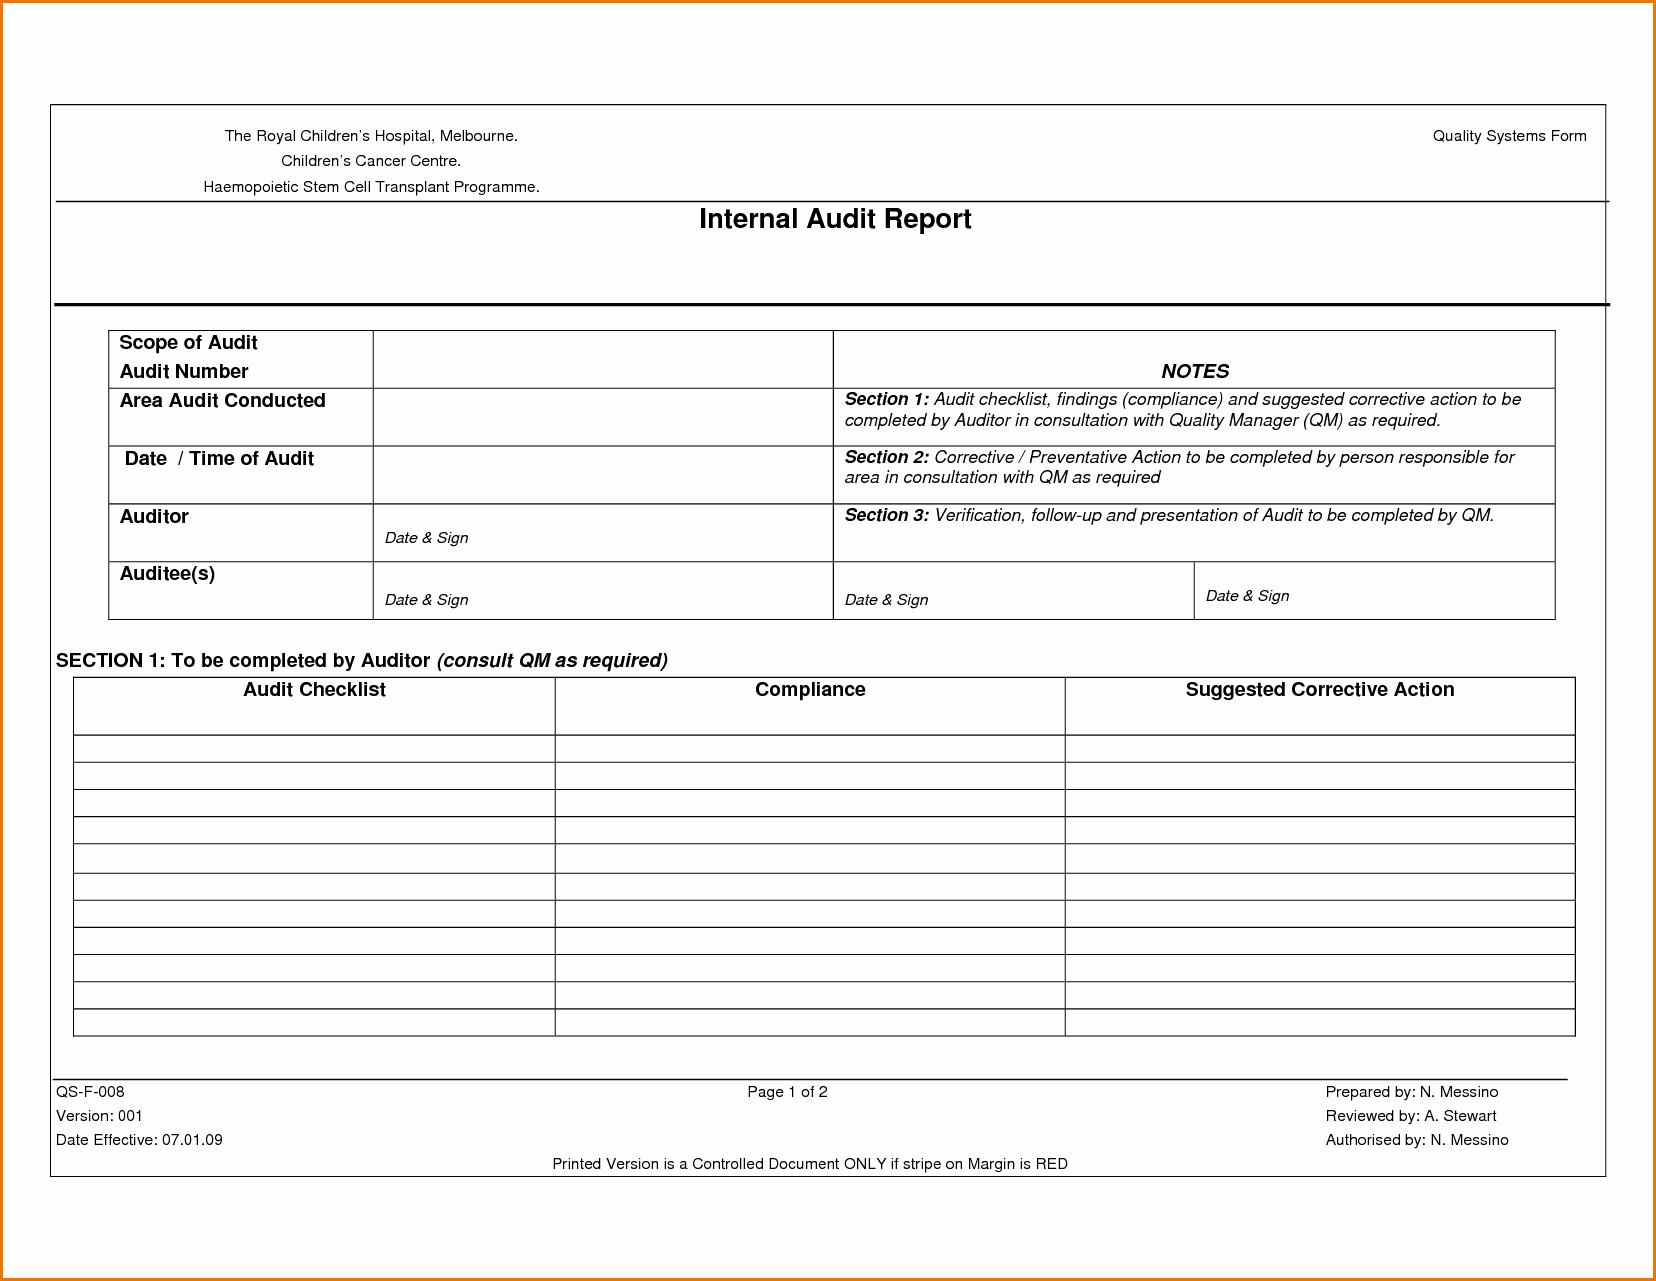 Internal Audit Report Templates Inspirational Sample Internal Audit Work Papers Excel Images